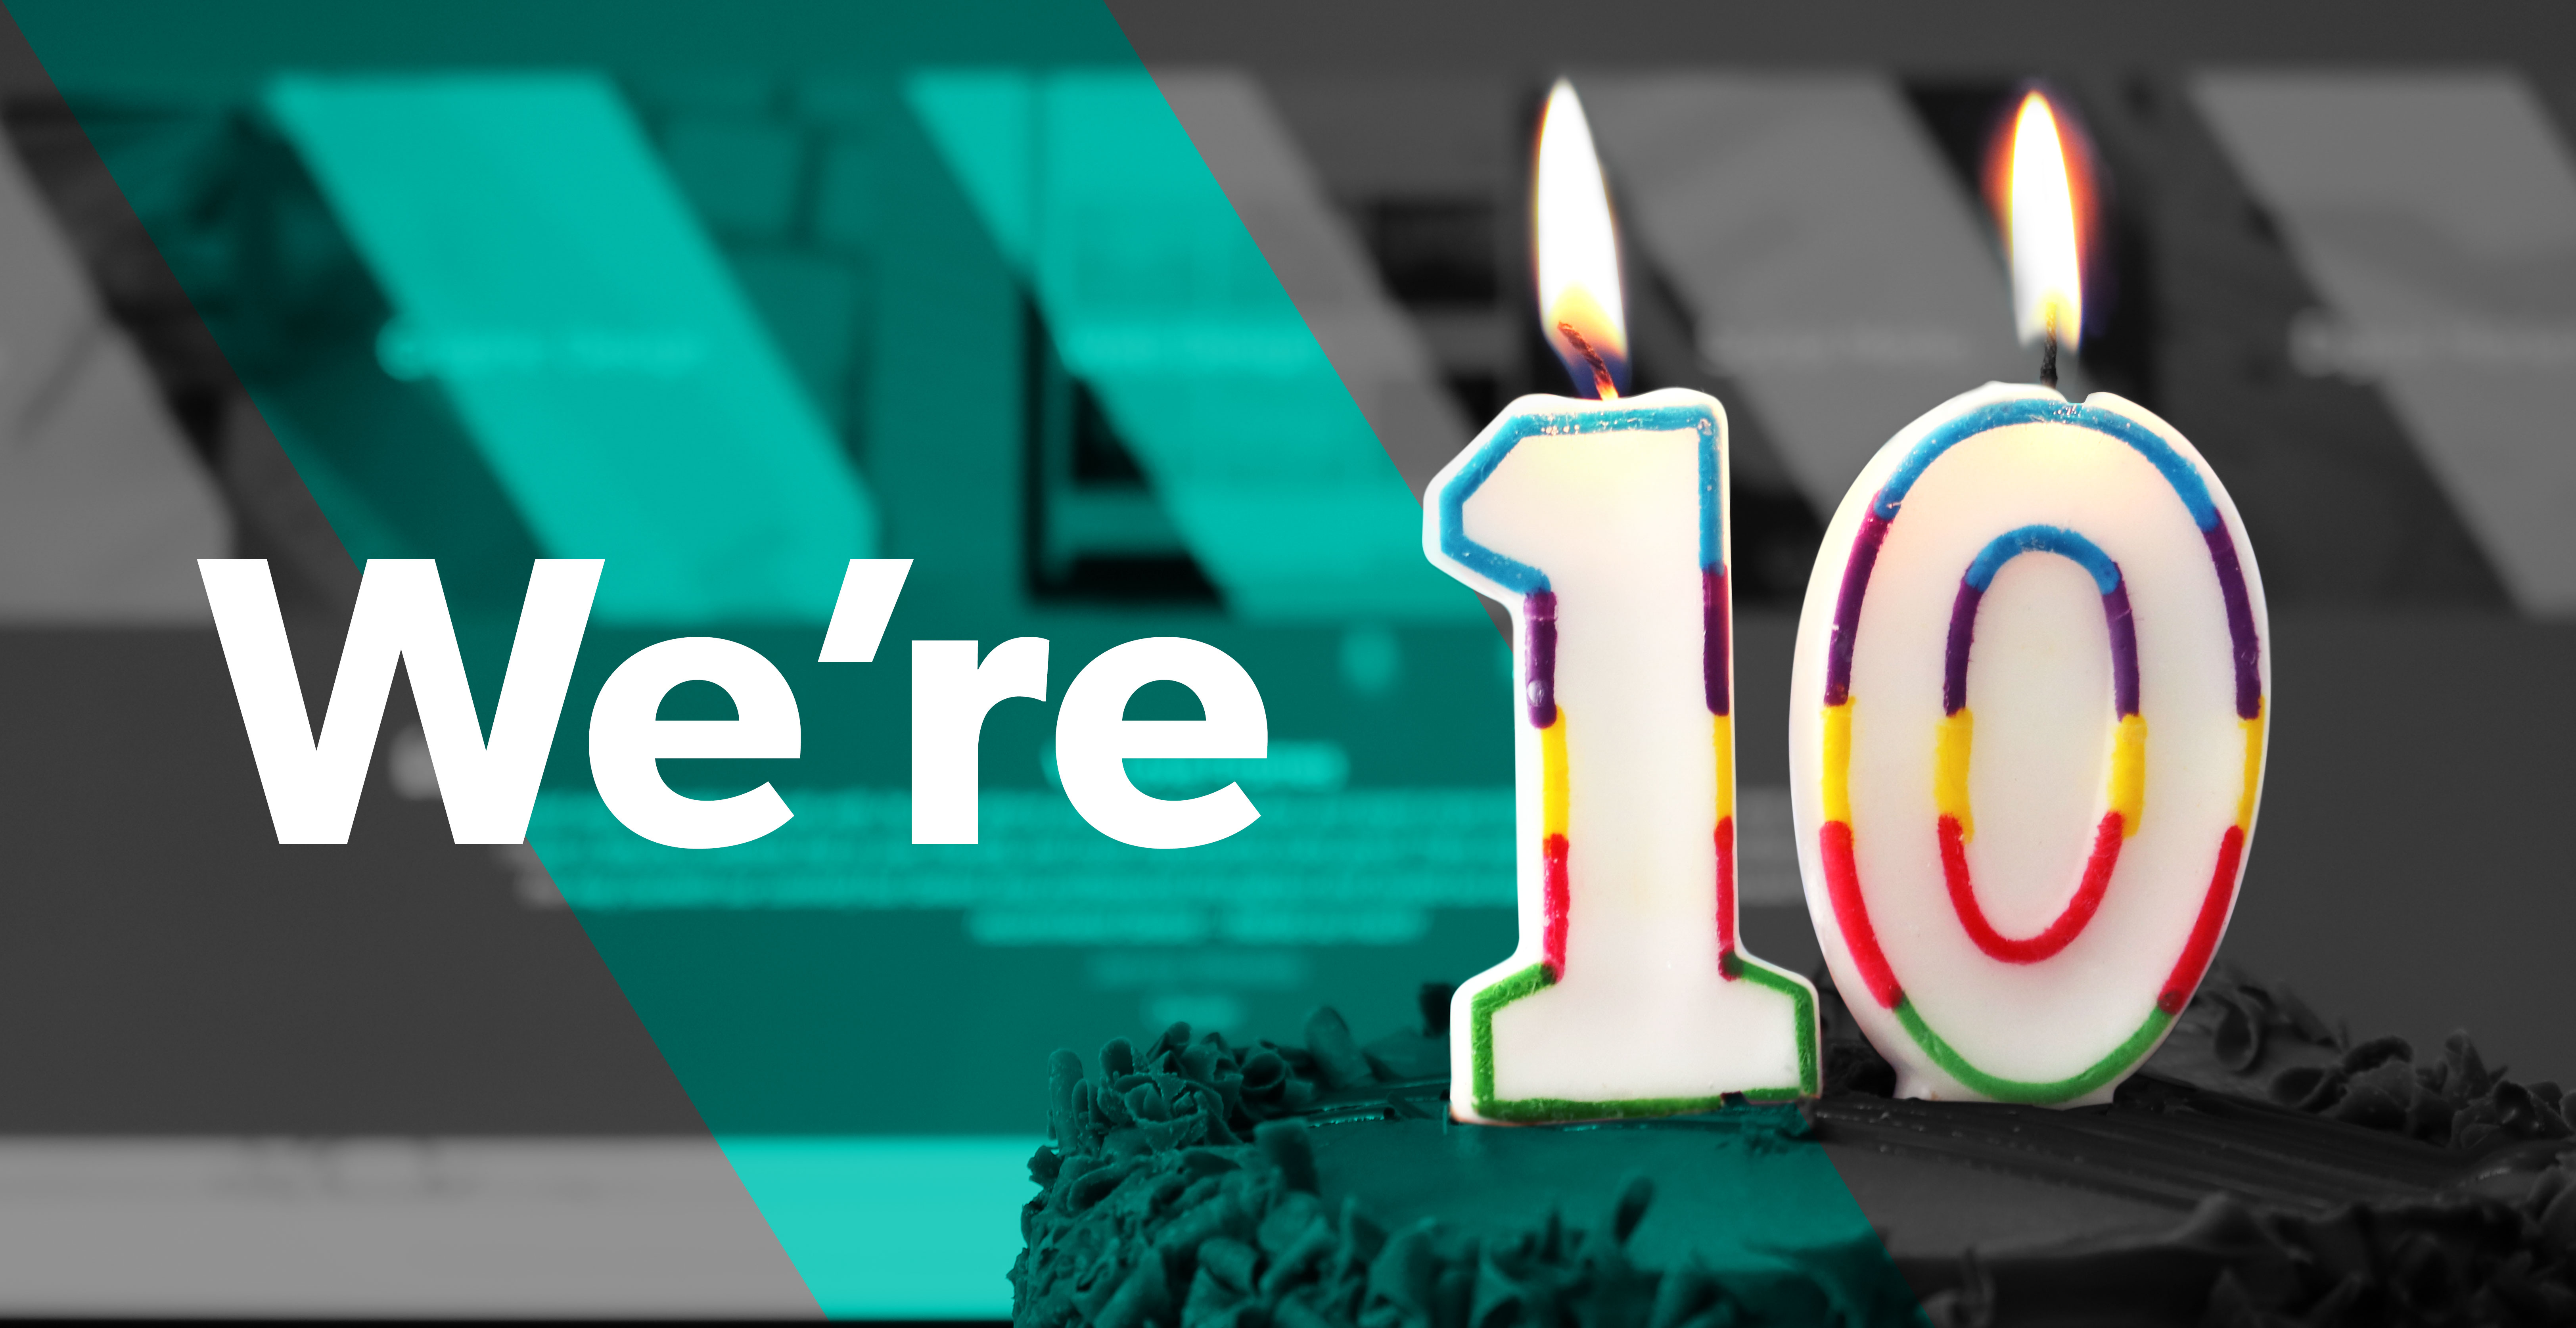 Celebrating 10 years in business as a Creative agency specialising in branding, graphic design and website design. Based in Glasgow, Scotland.